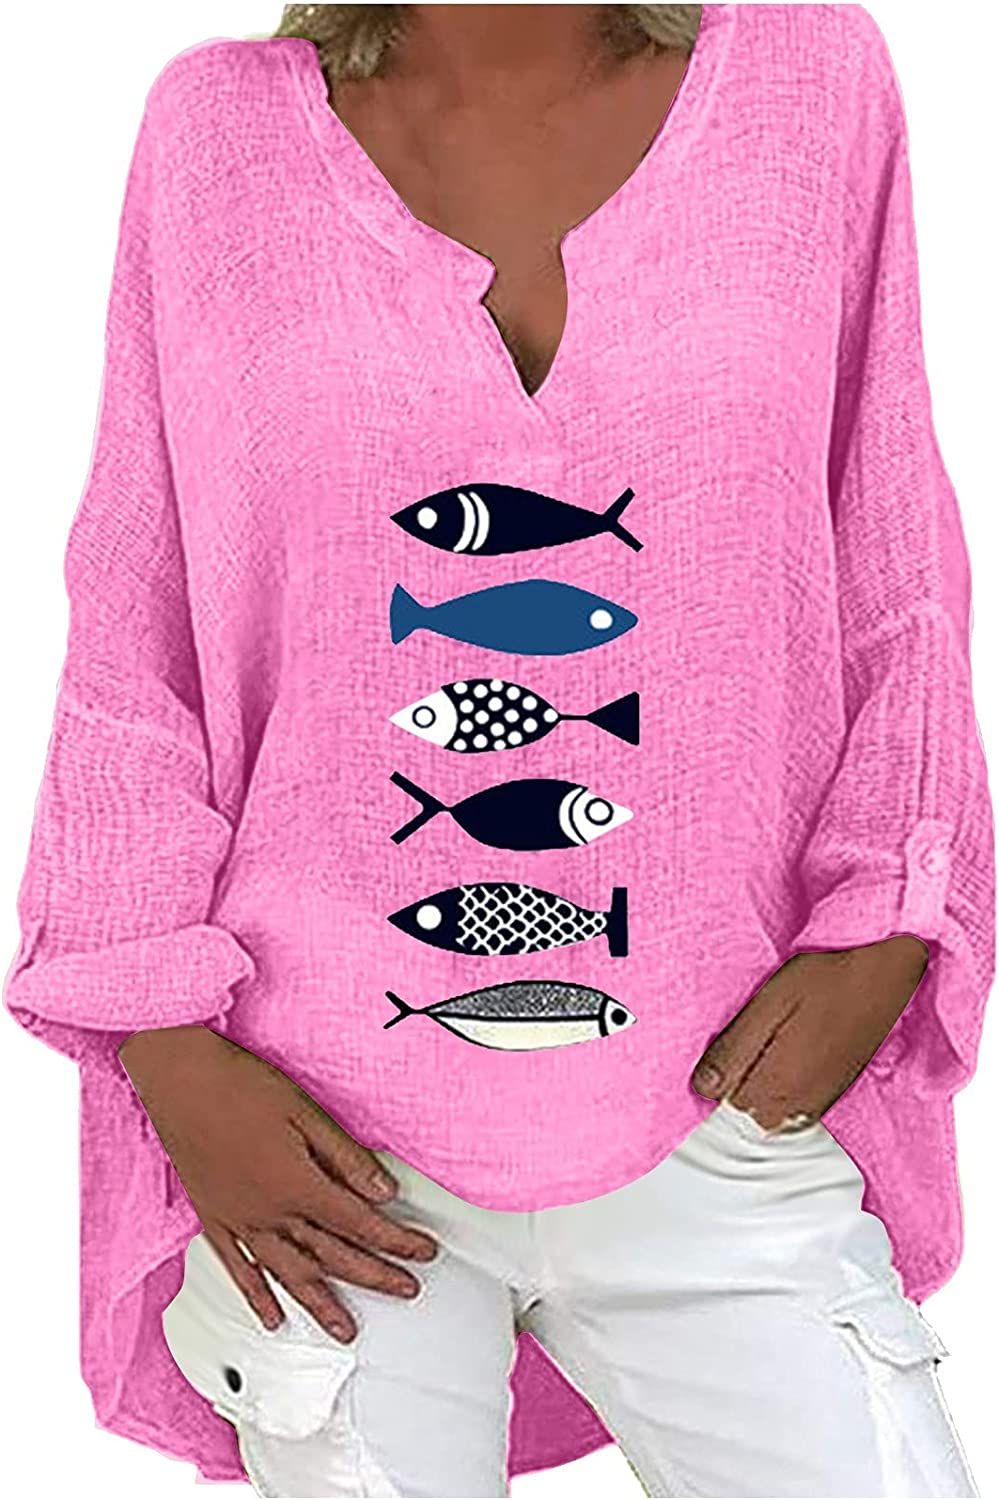 Sweatshirts Tops for Women Cute Fish Graphic Shirts Long Sleeve V-Neck T-Shirts Button Linen Blouse Comfy Soft Tees